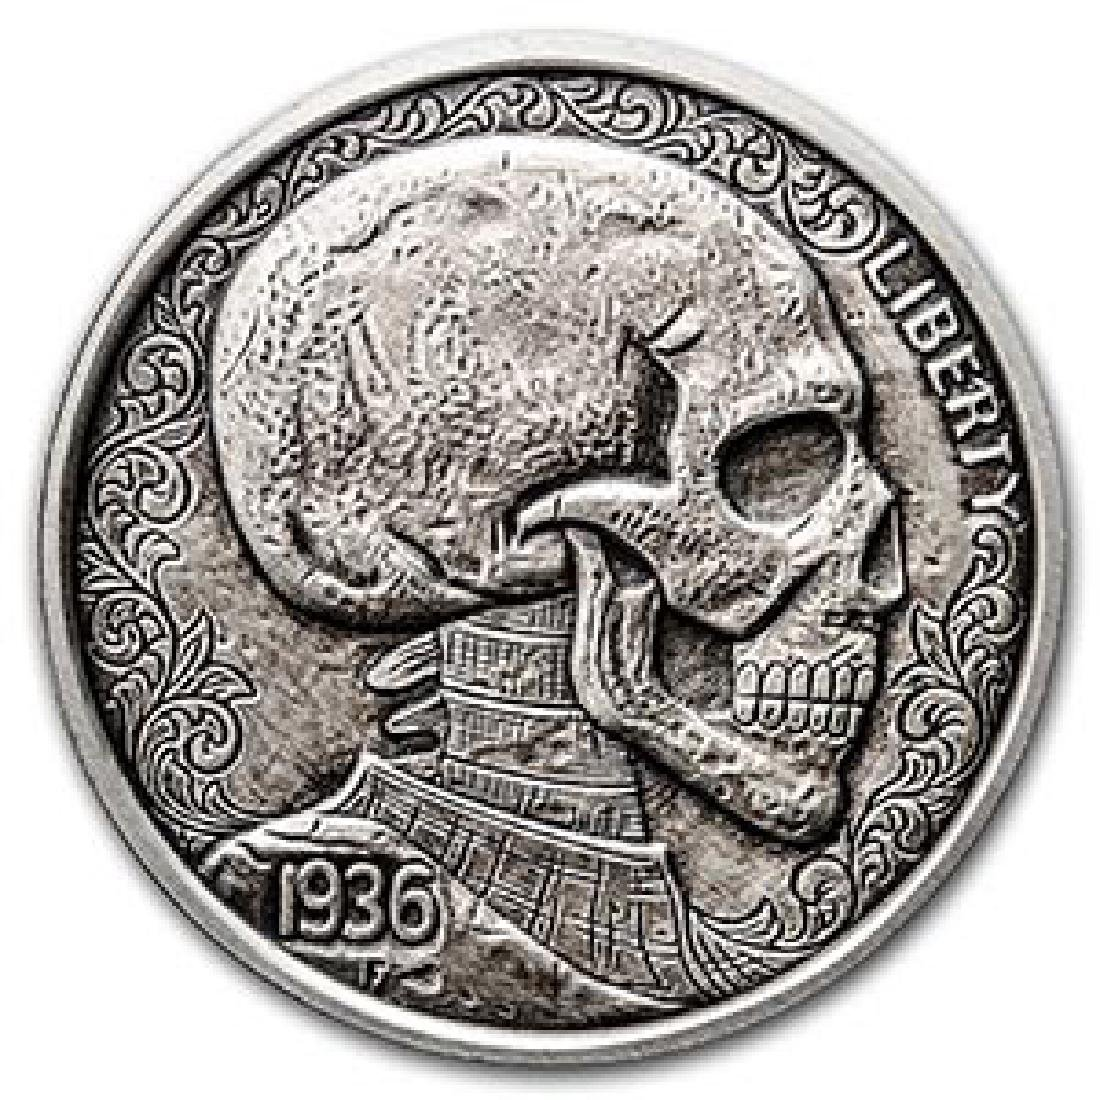 1 oz Silver Antique Round Hobo Nickel Replica (Skulls &